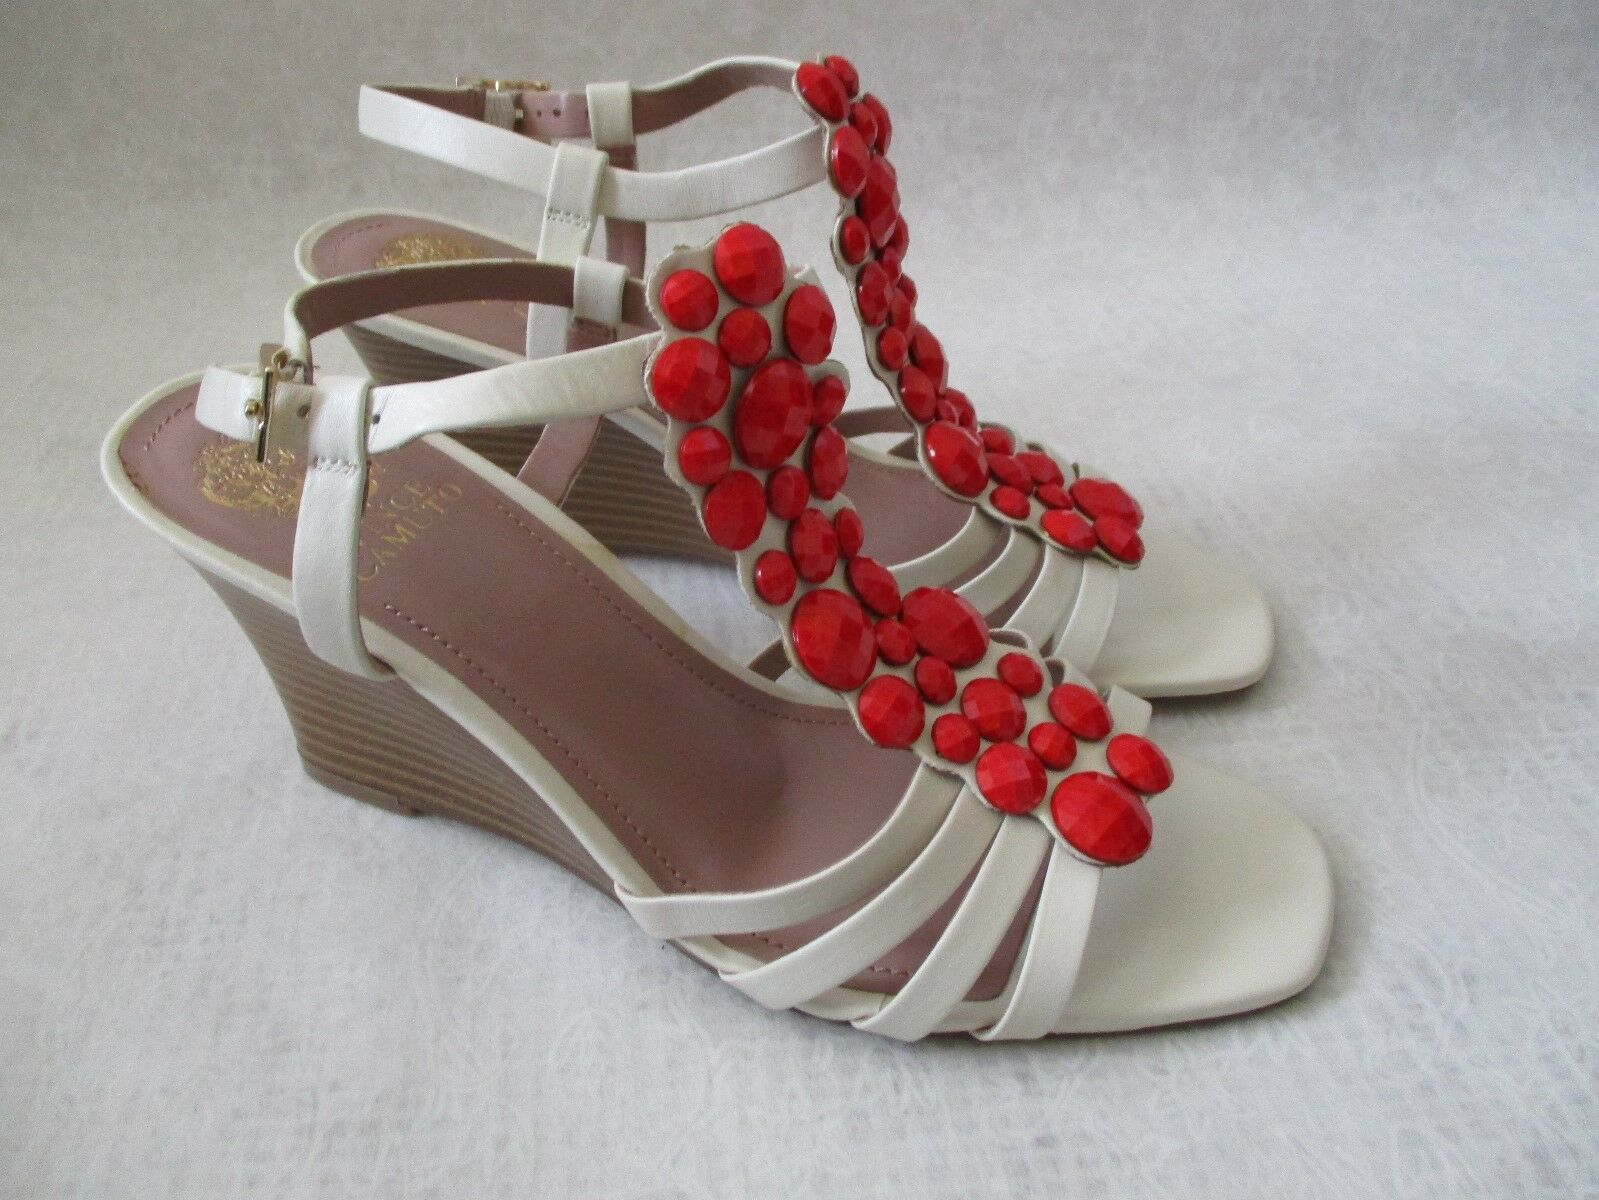 VINCE CAMUTO LEATHER WHITE ORLOV RED JEWELED WEDGE SHOES SIZE 8 M - NEW W BOX